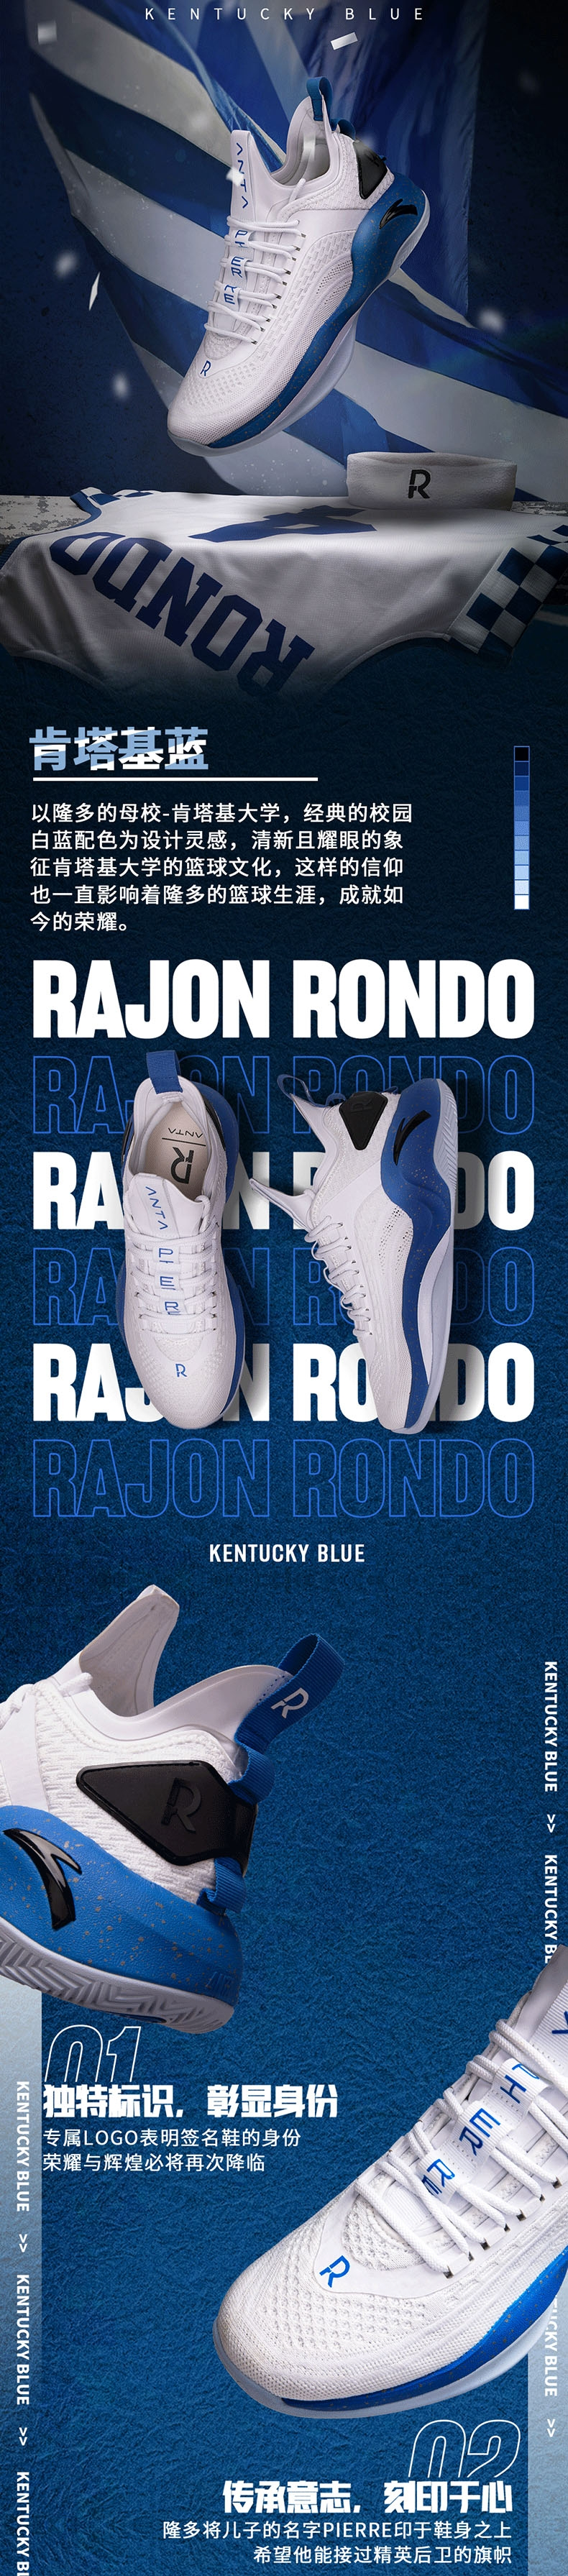 "Anta RR6 Rajon Rondo 2020 ""Kentucky Blue"" Summer Low Basketball Shoes"